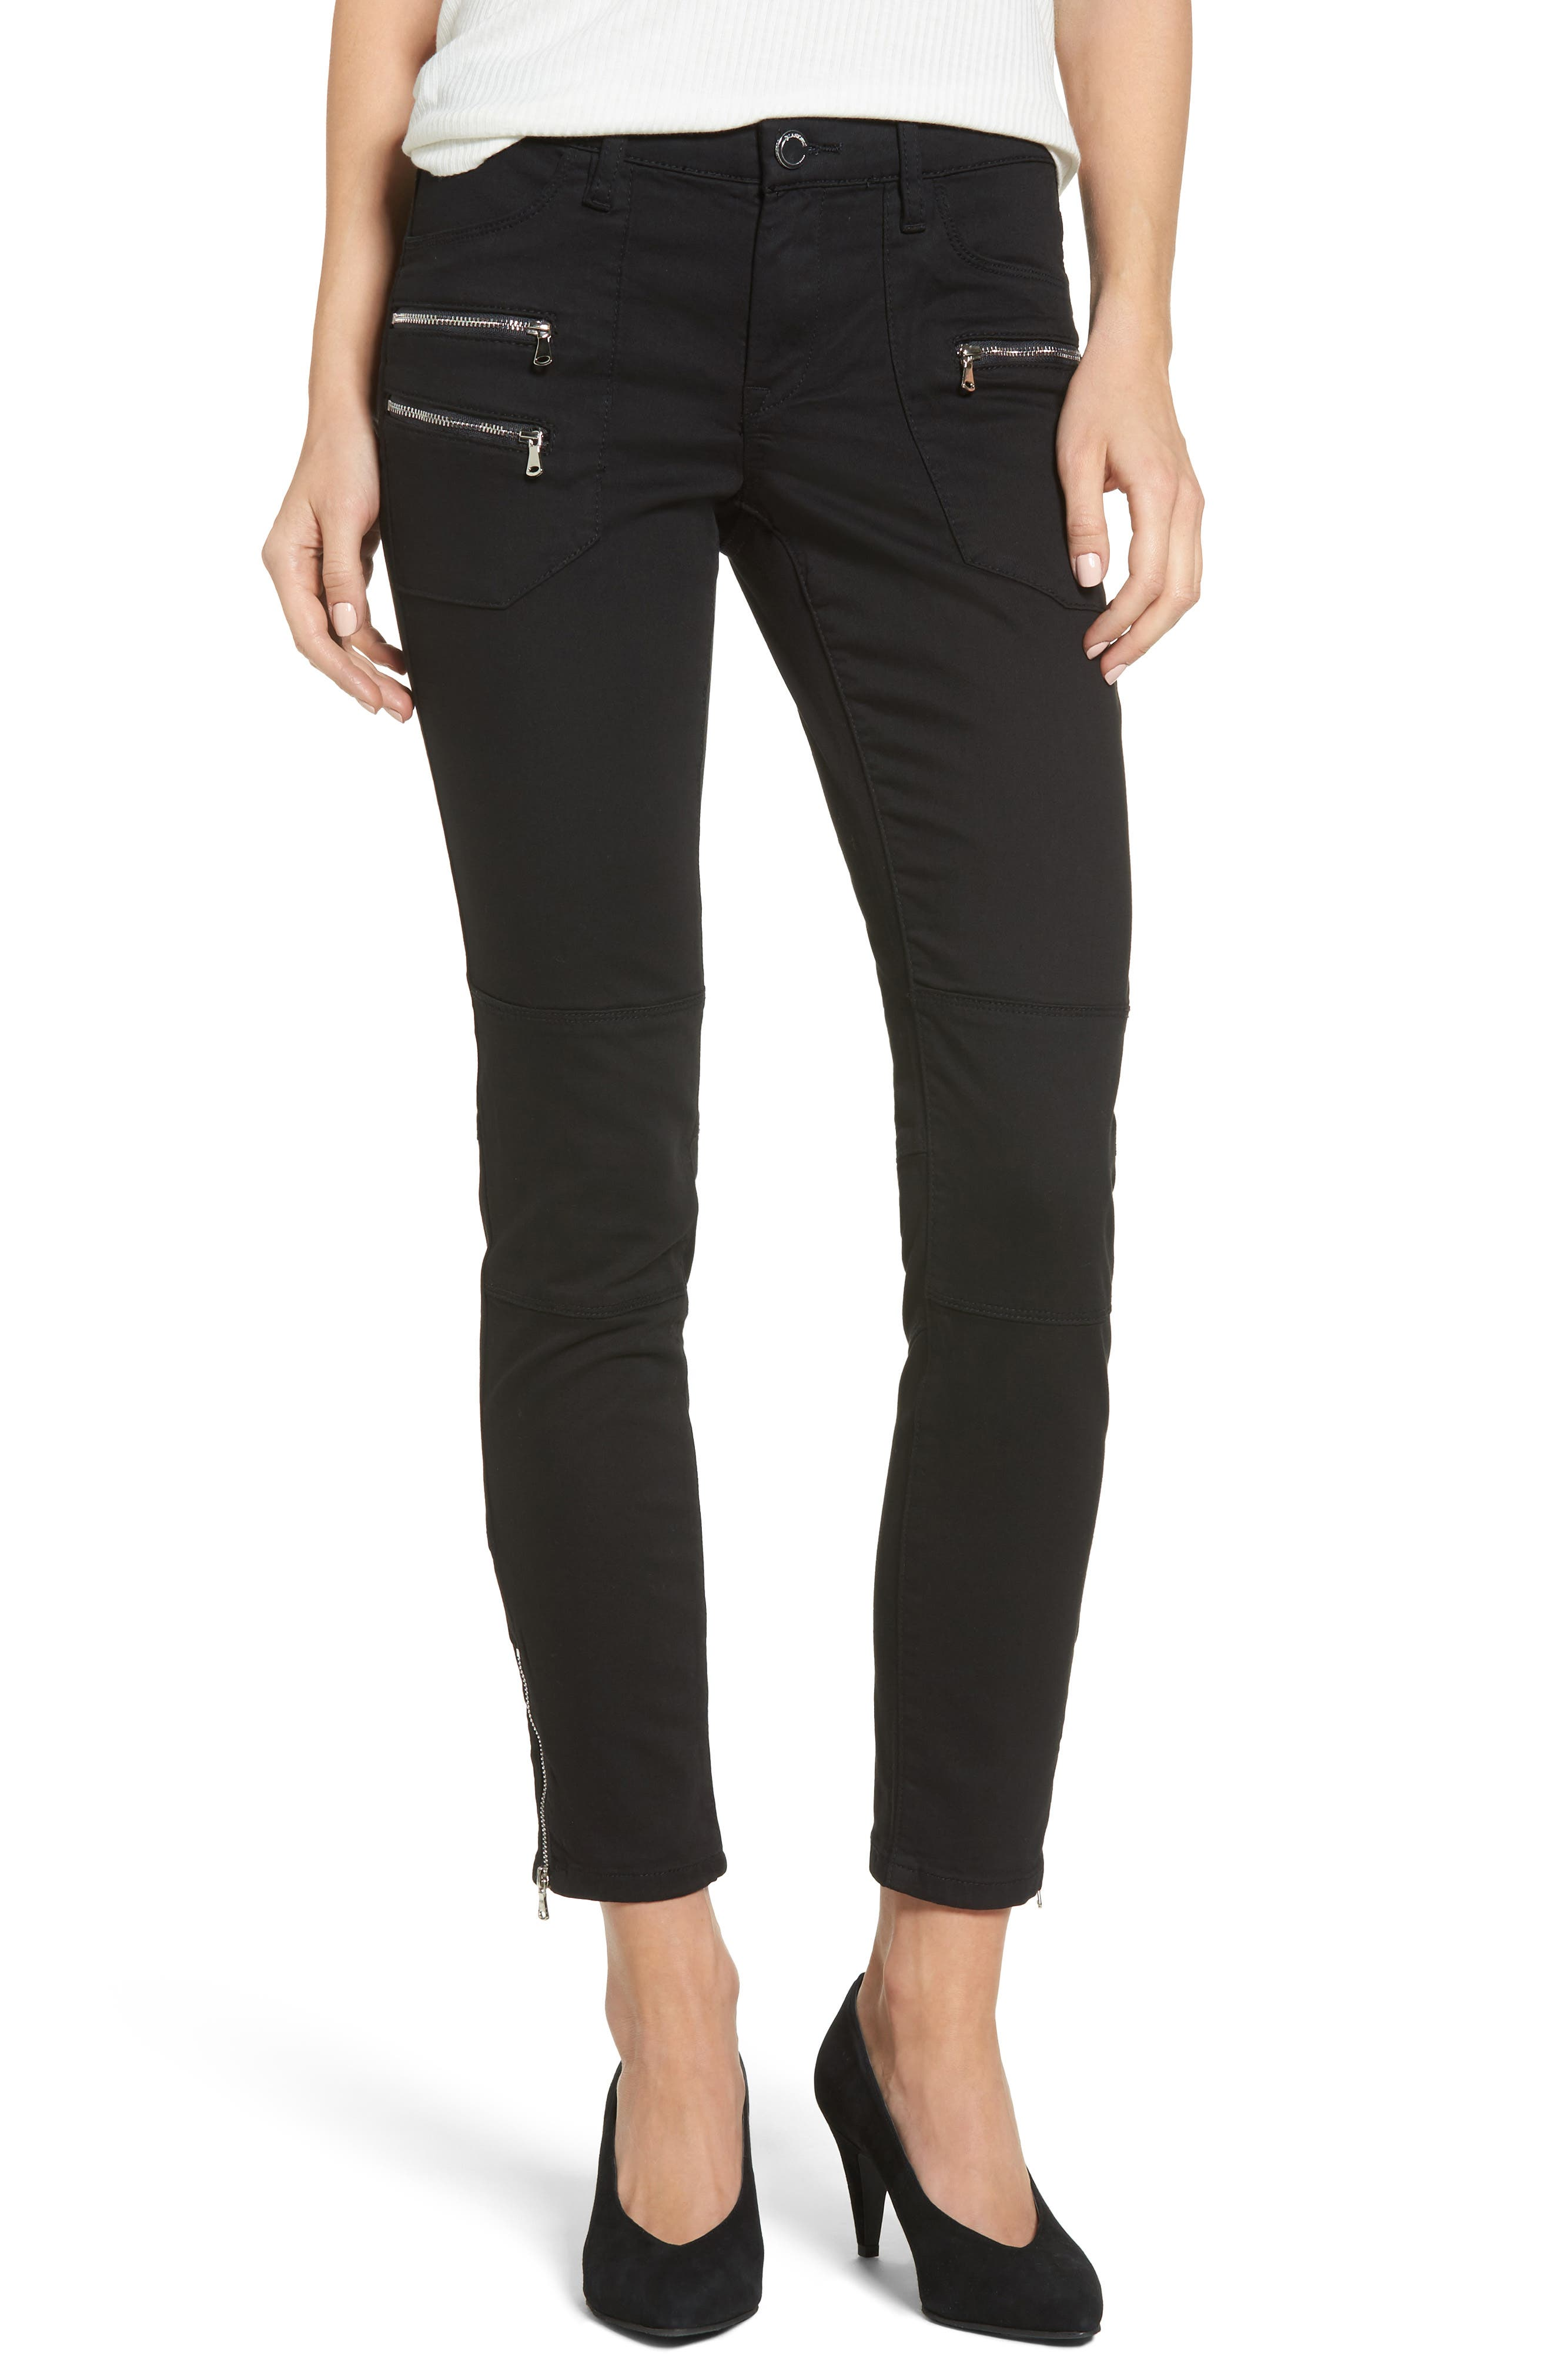 Private Party Skinny Jeans,                             Main thumbnail 1, color,                             Black